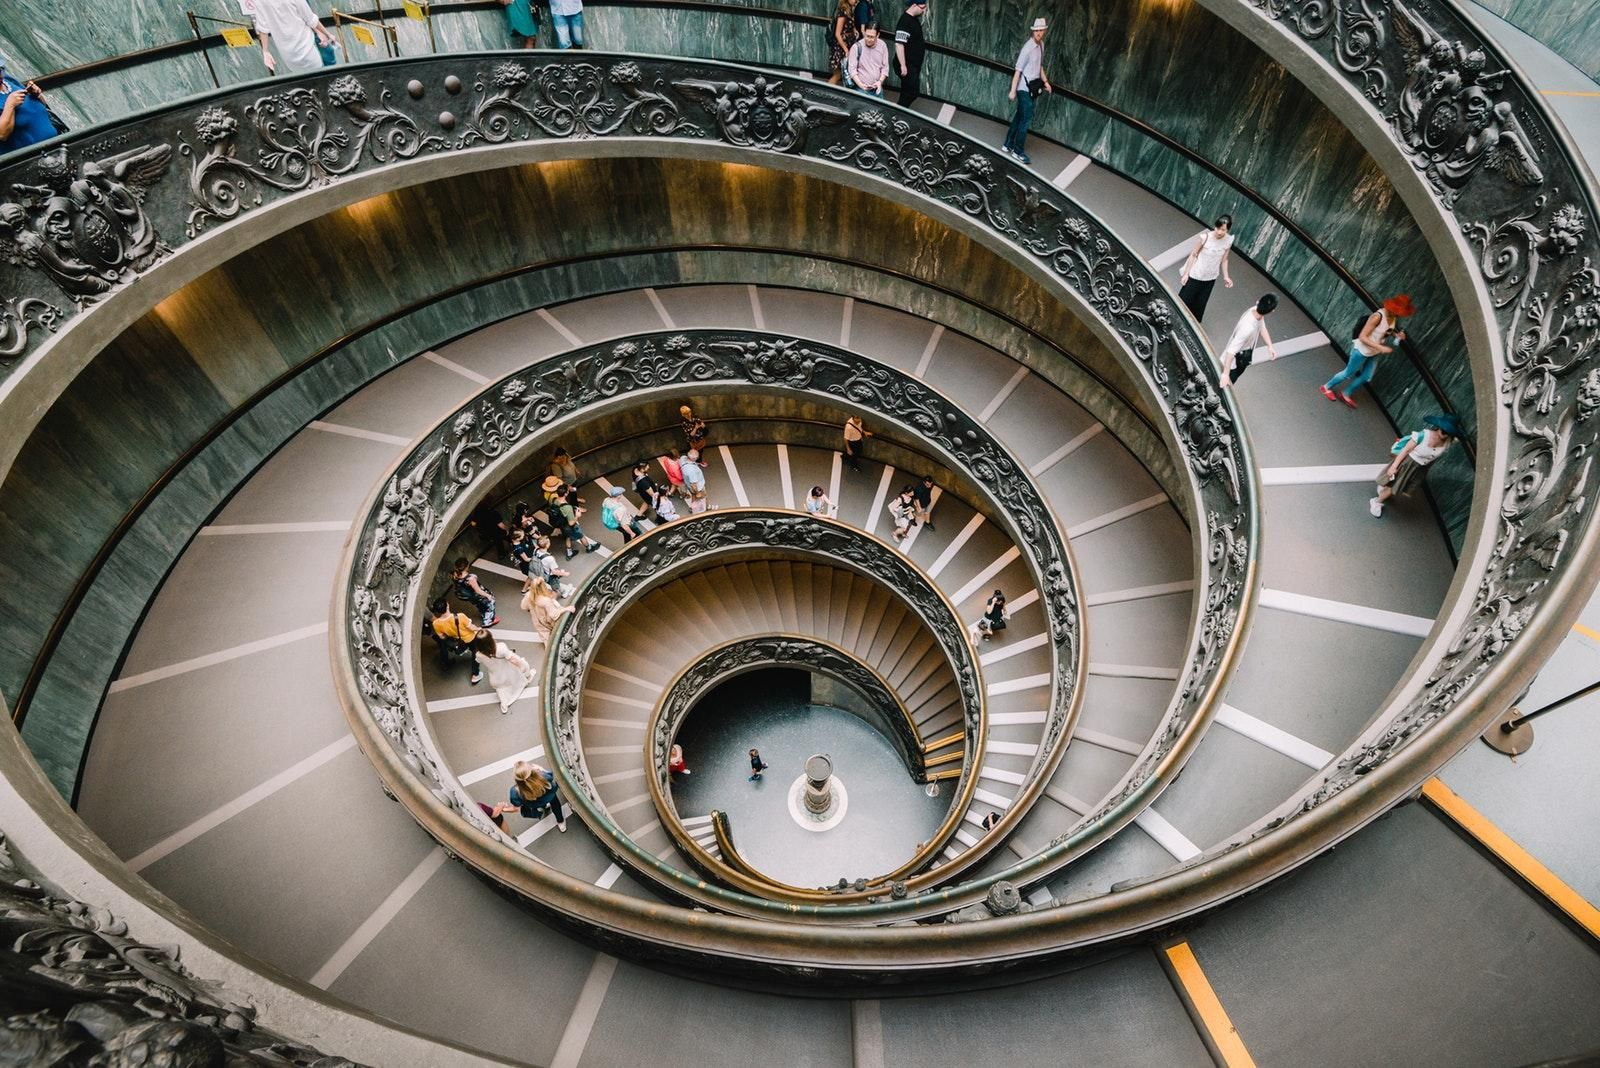 Spiral staircase in the Vatican City